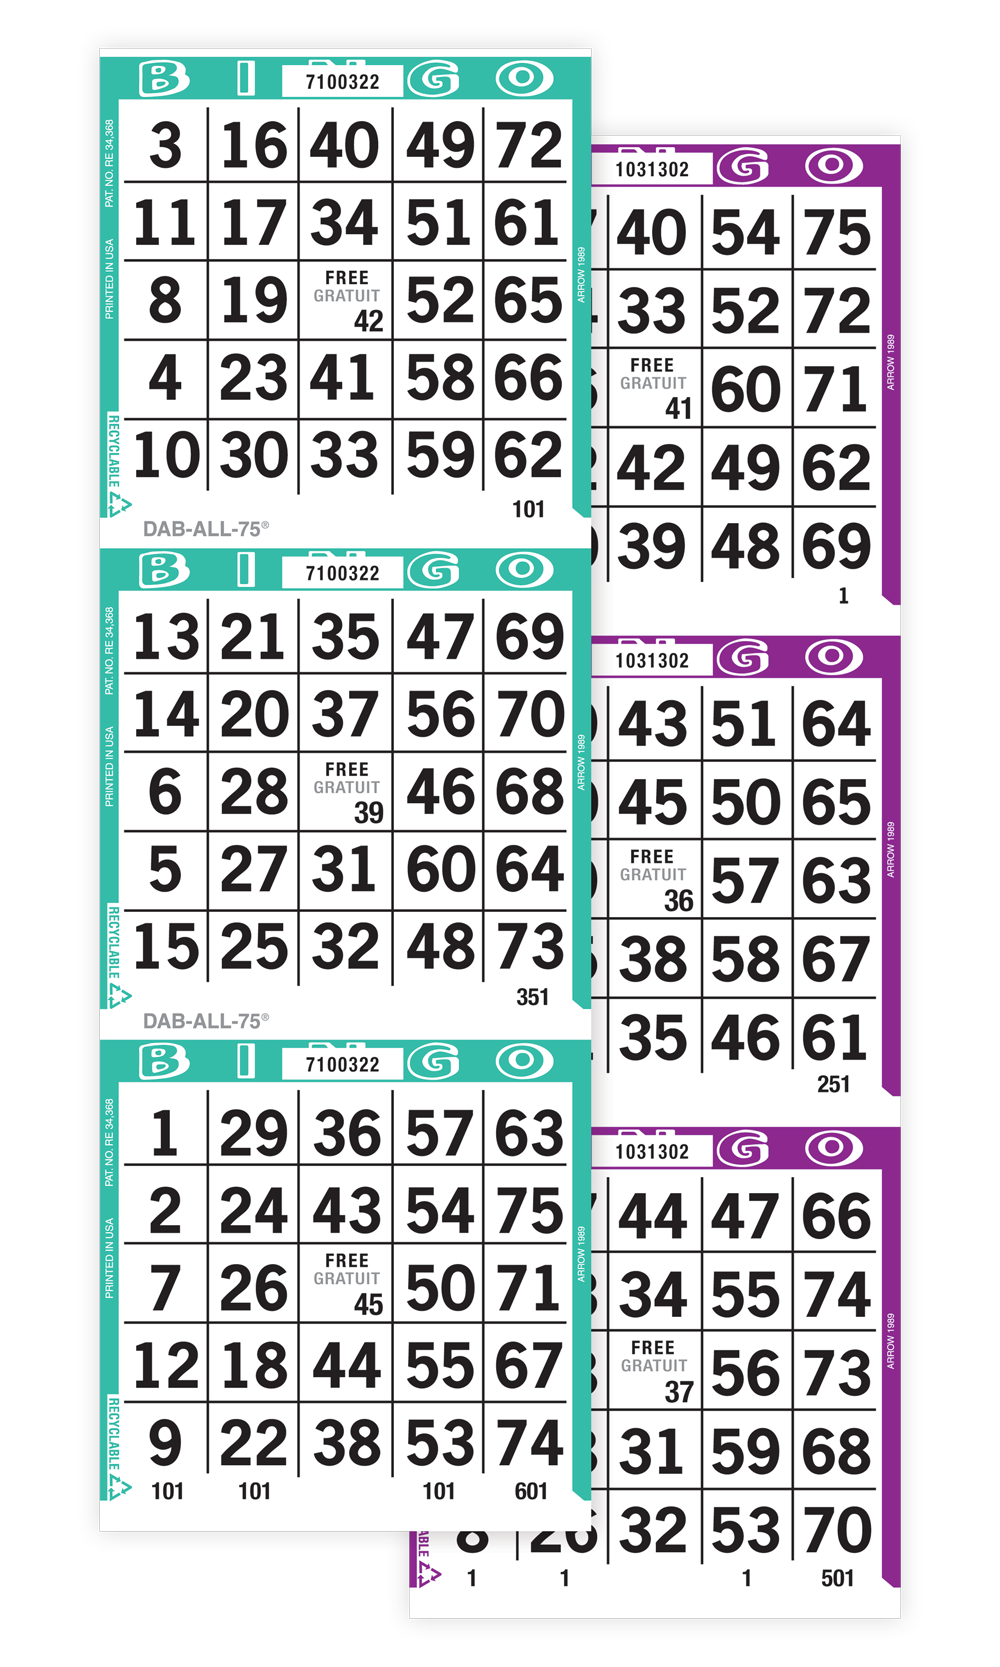 Dab-All-75 Bingo Paper